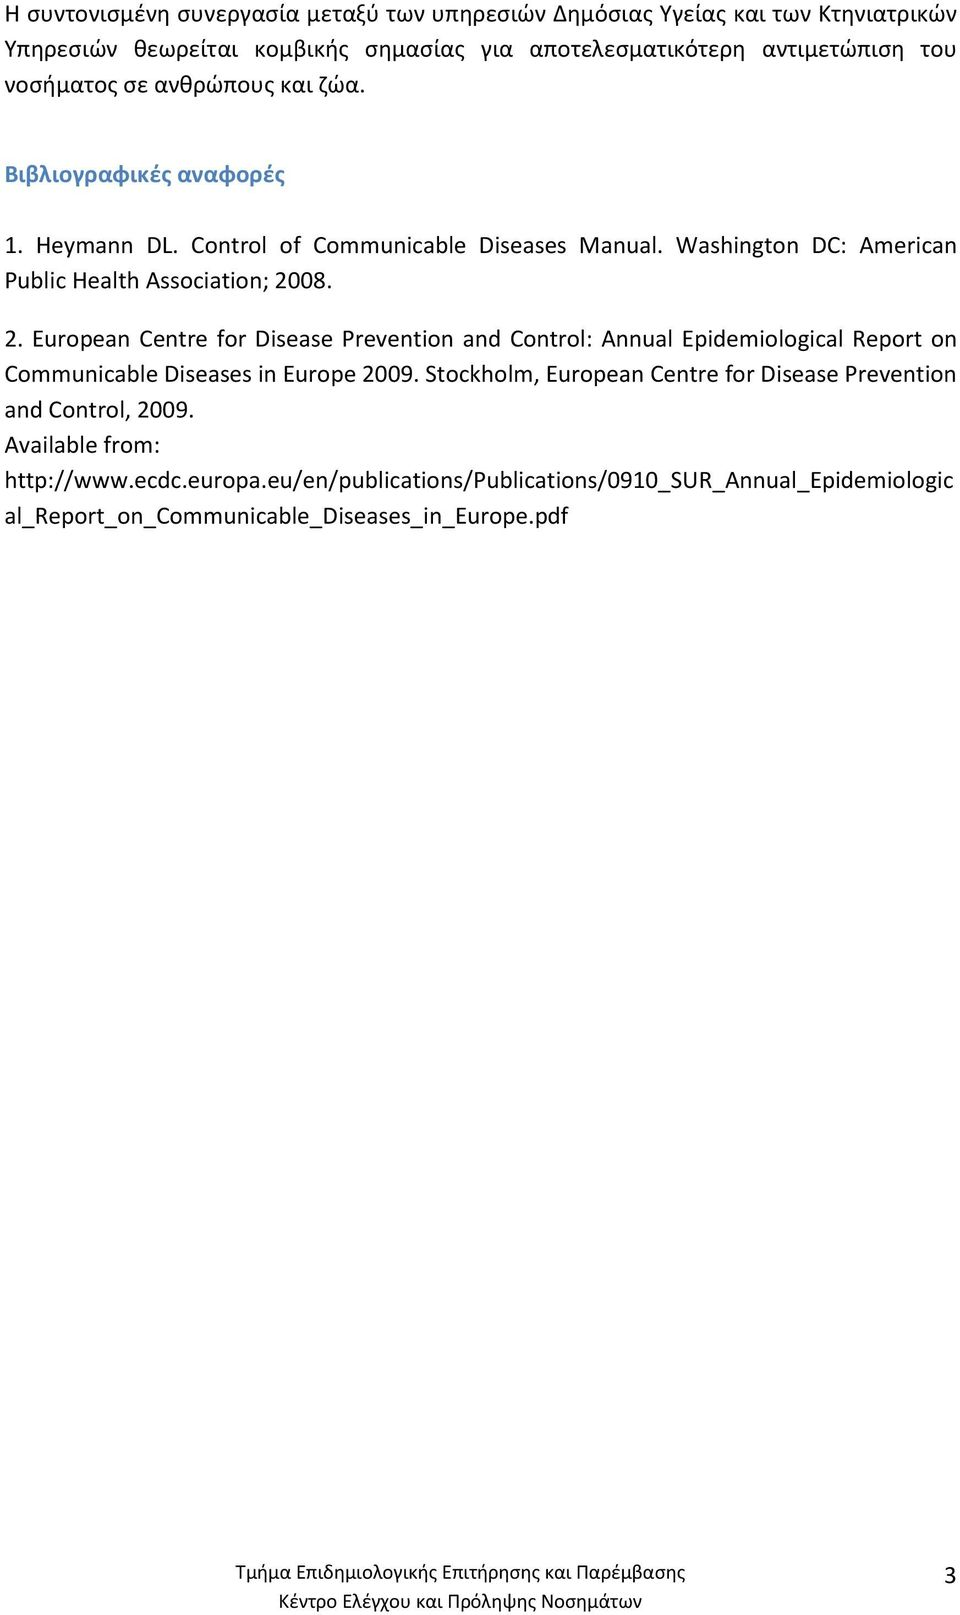 2. European Centre for Disease Prevention and Control: Annual Epidemiological Report on Communicable Diseases in Europe 2009.